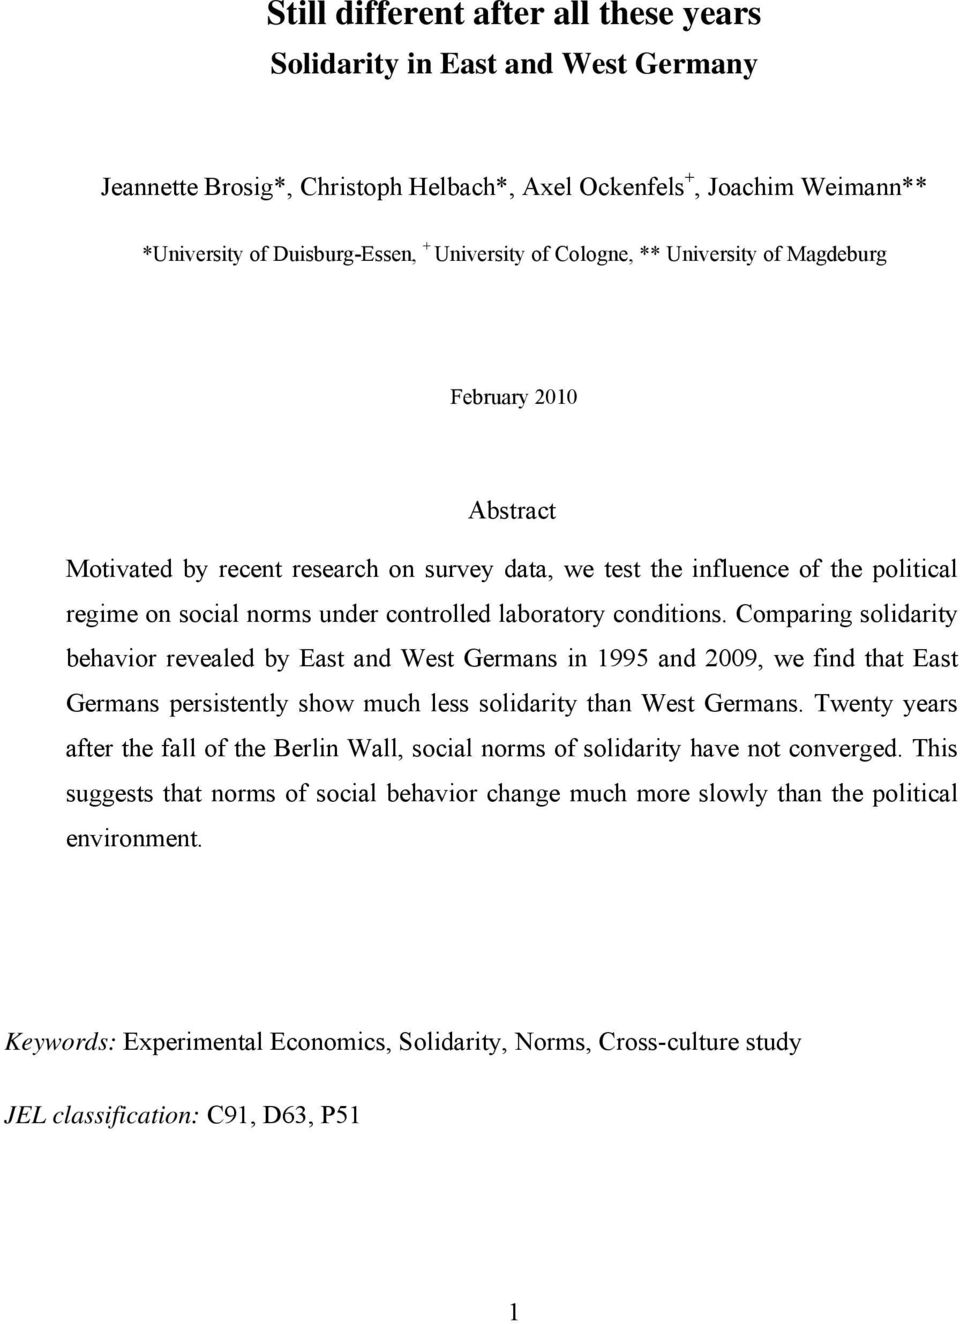 conditions. Comparing solidarity behavior revealed by East and West Germans in 1995 and 2009, we find that East Germans persistently show much less solidarity than West Germans.